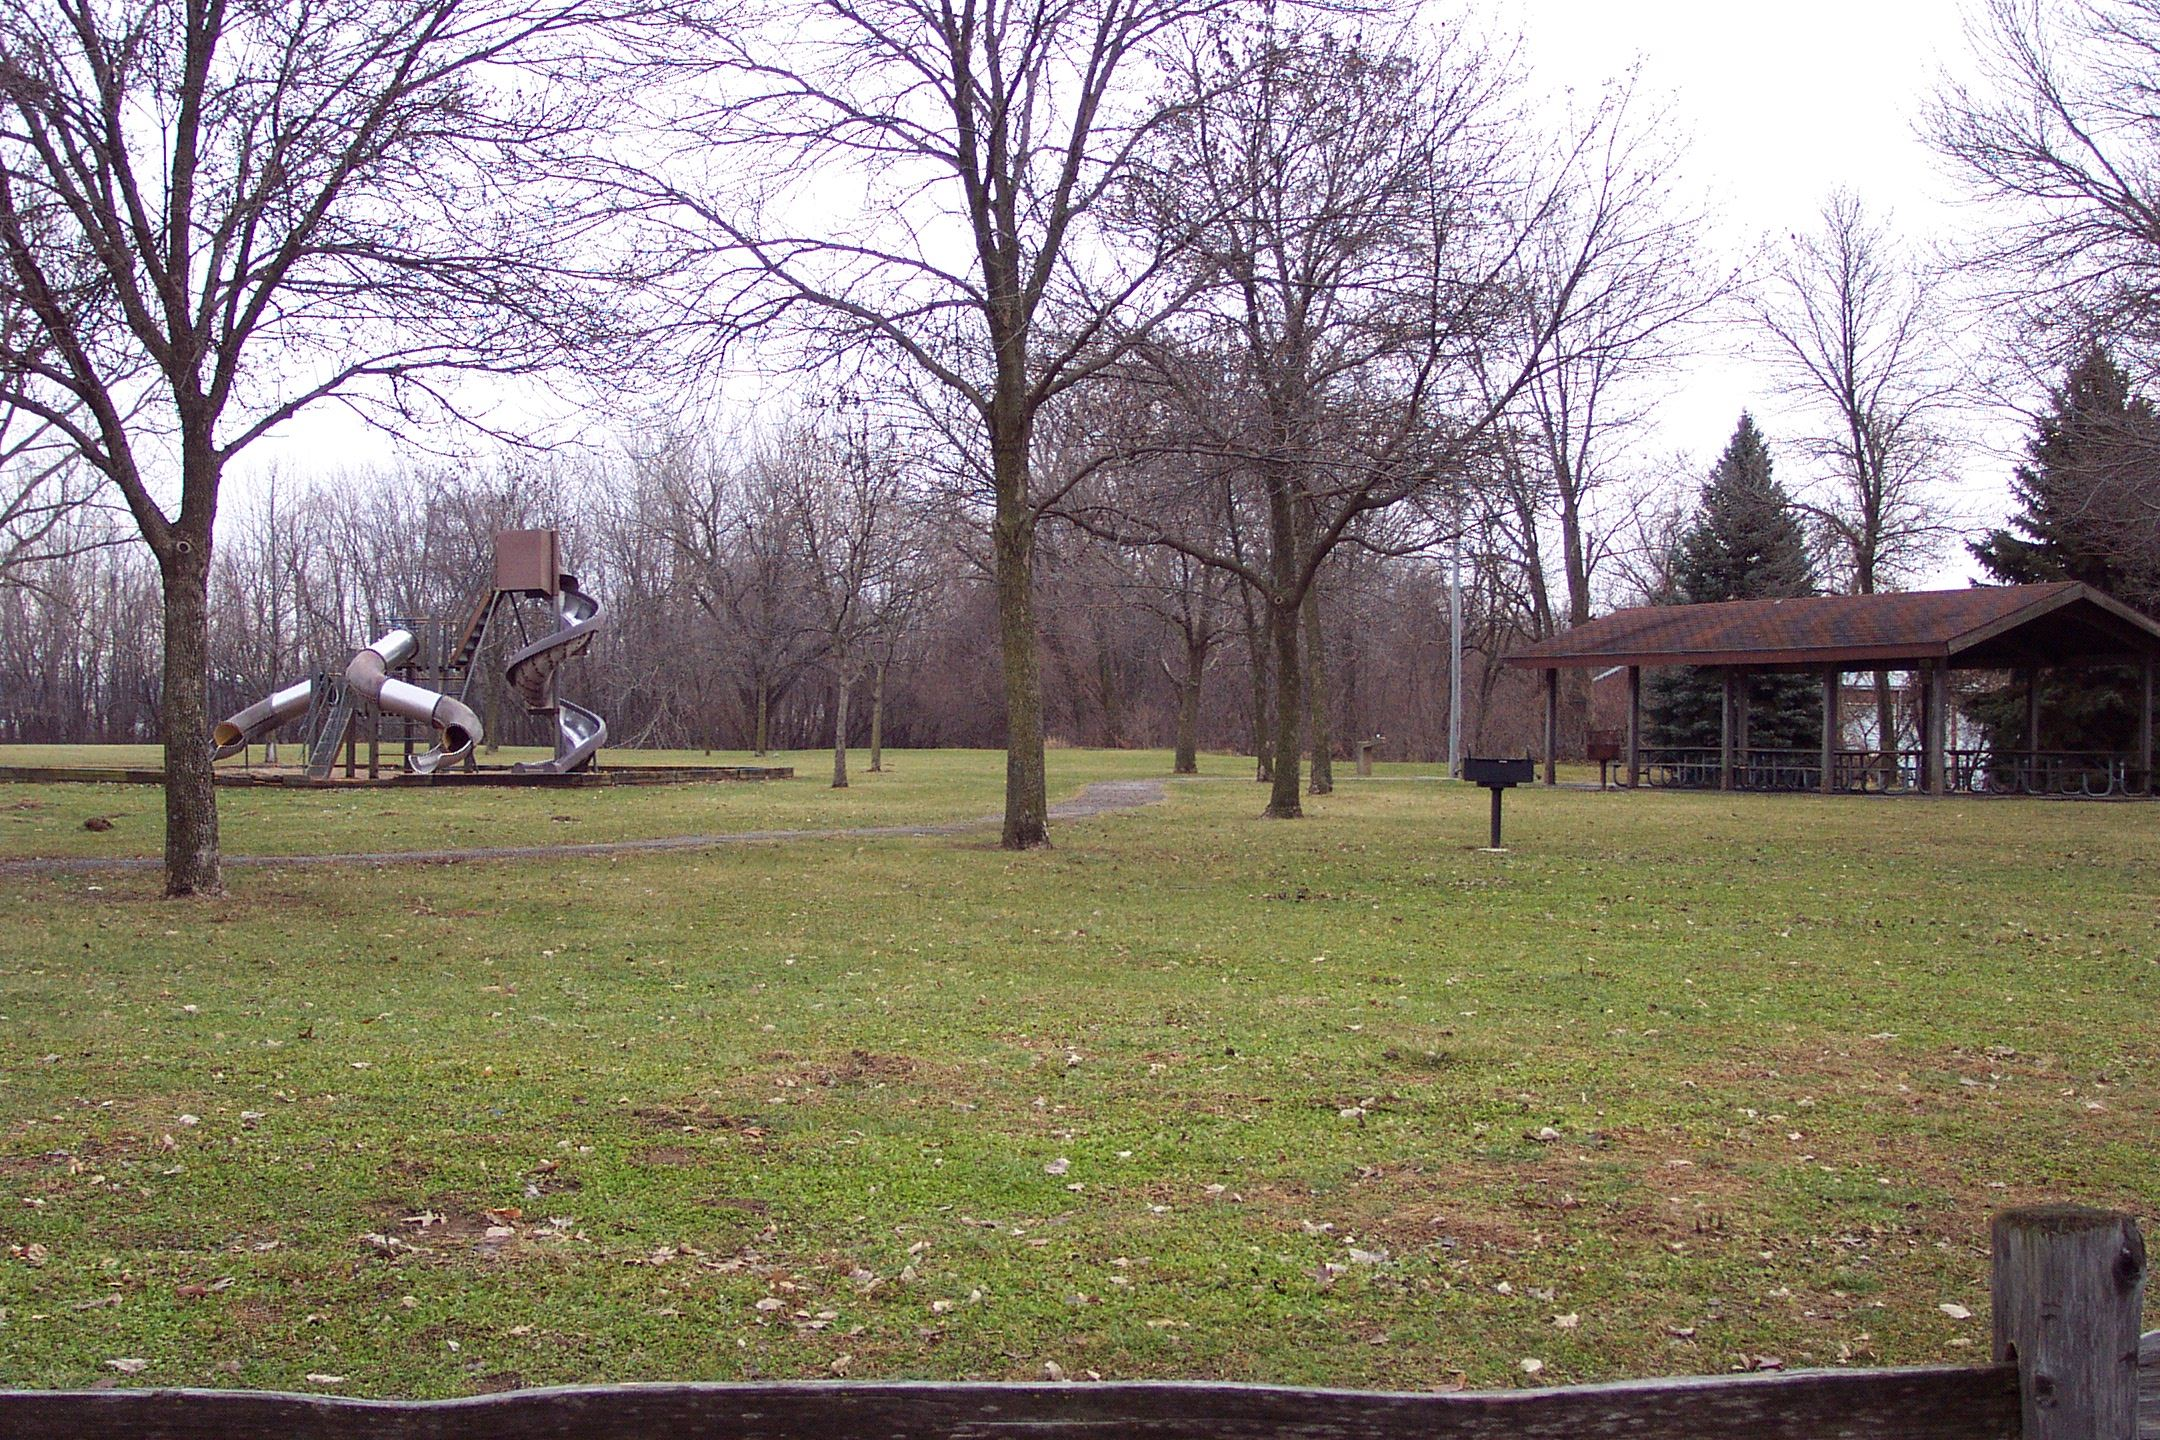 Greenspace and playground at Hasselroth Park